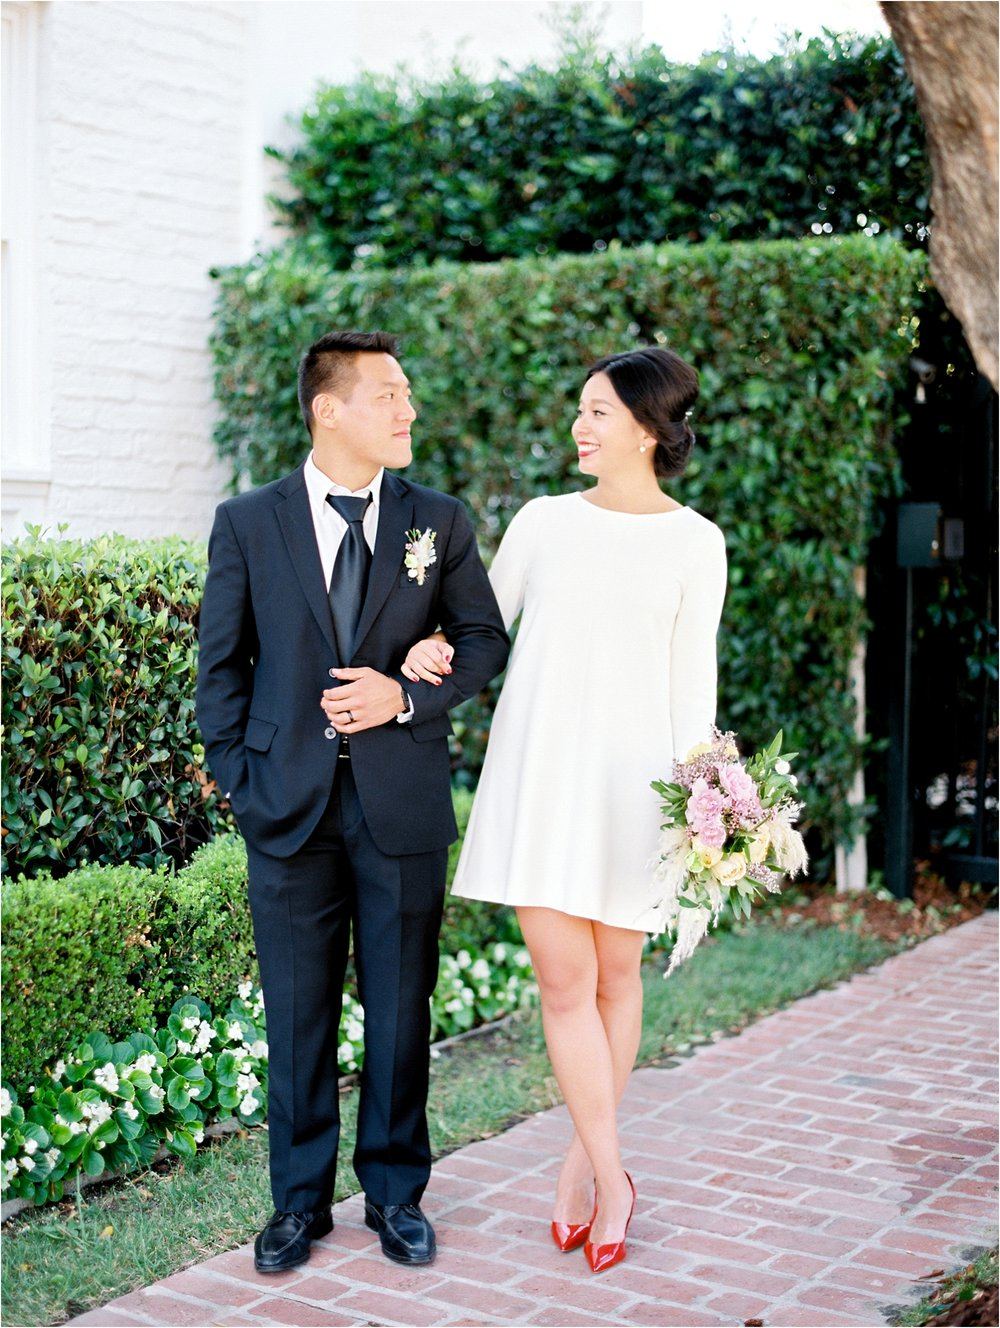 Beverly_Hills_Elopement_Wedding_Photography-17.jpg